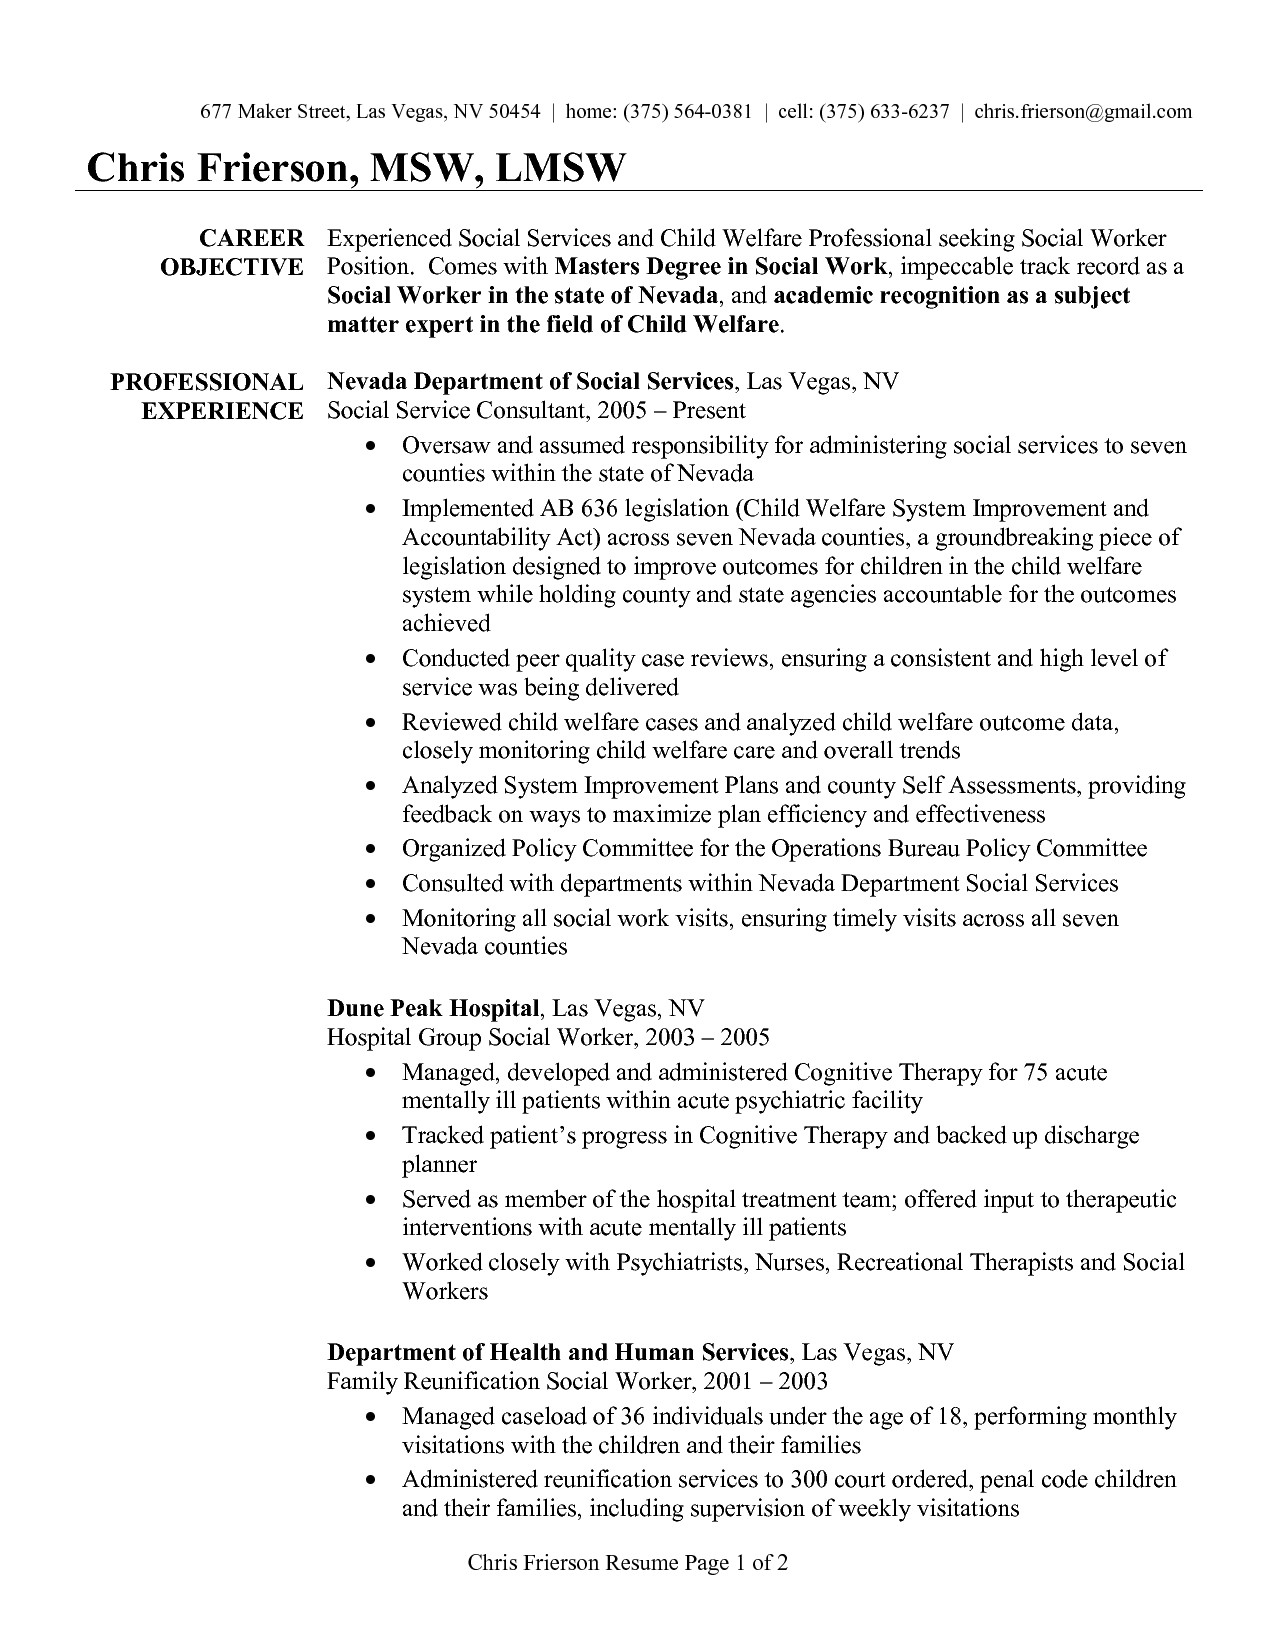 Social Worker Resume Templates social Work Resume Examples